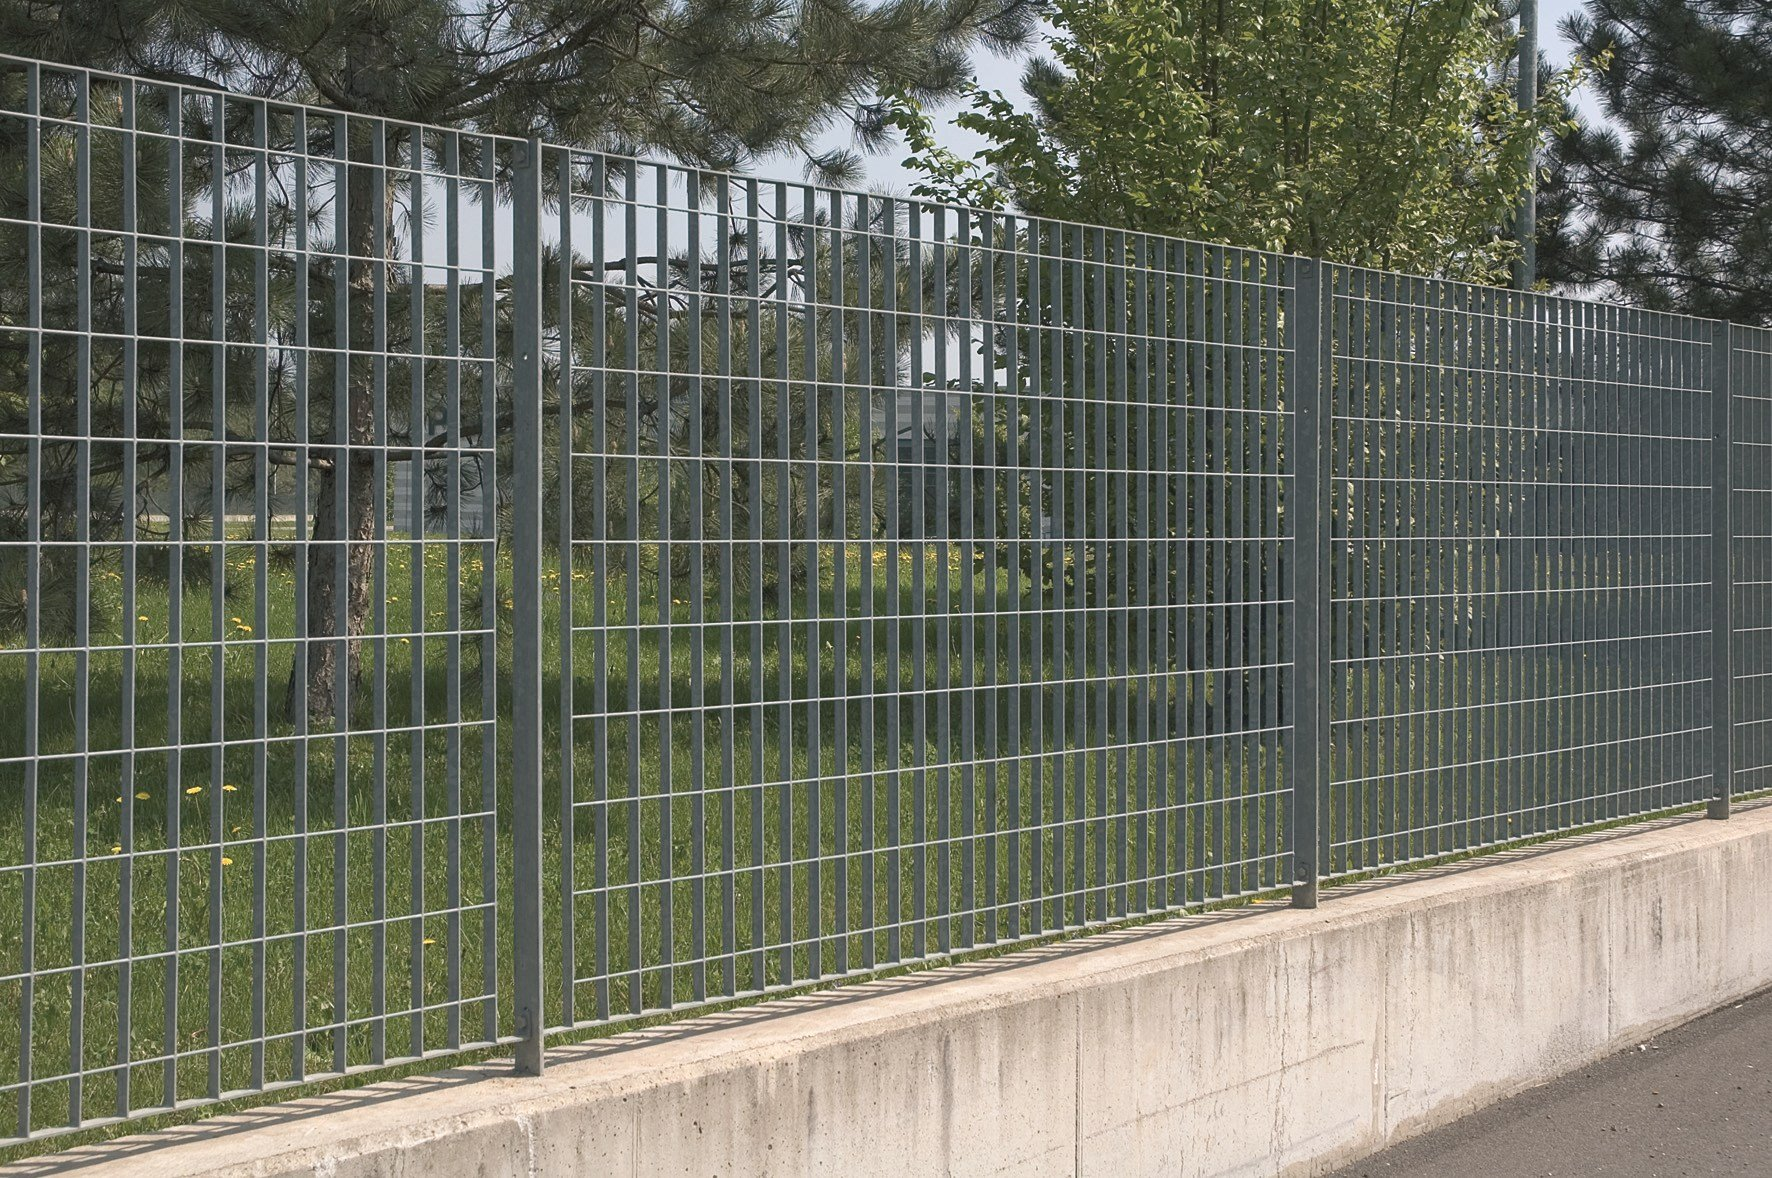 Grating fence britosterope by nuova defim for Recinzioni per ville moderne